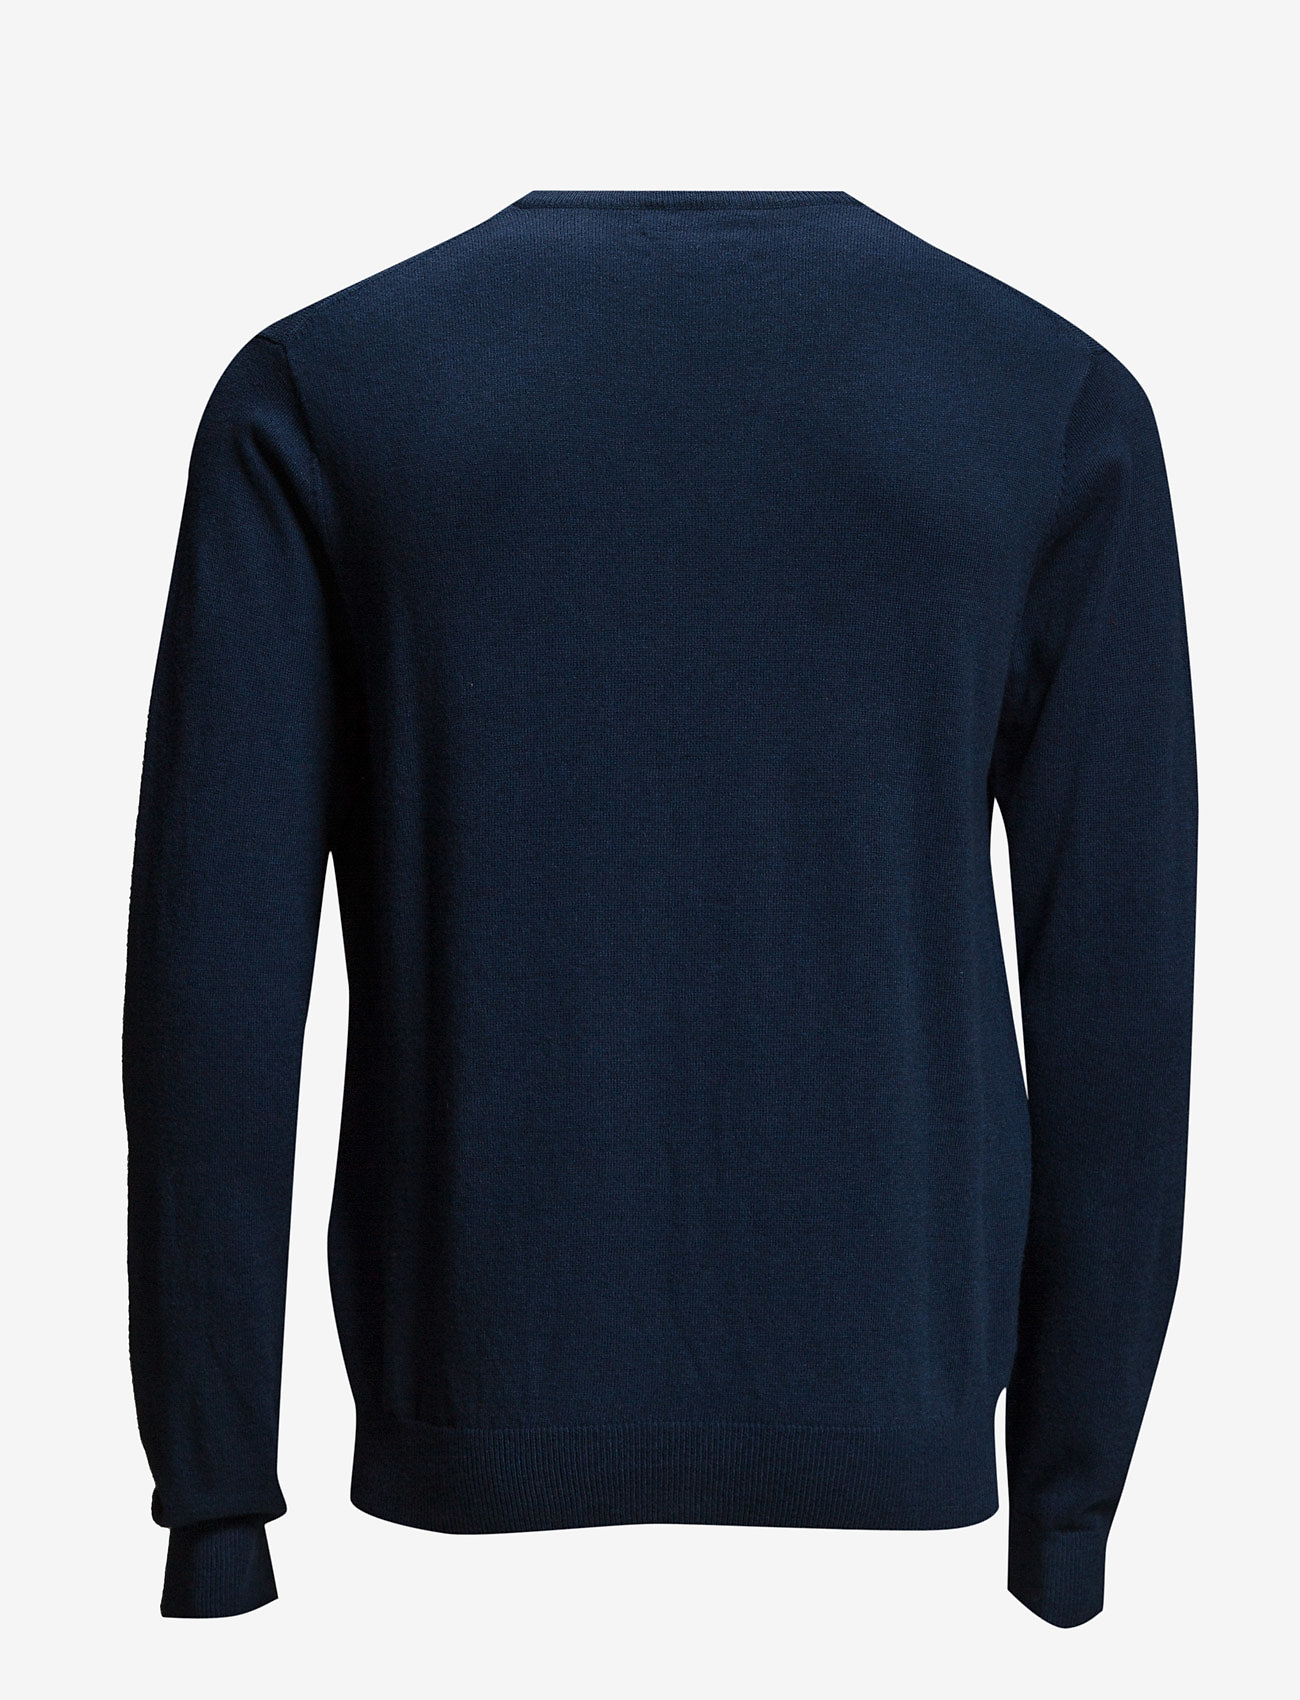 GANT - COTTON WOOL V-NECK - knitted v-necks - marine melange - 1